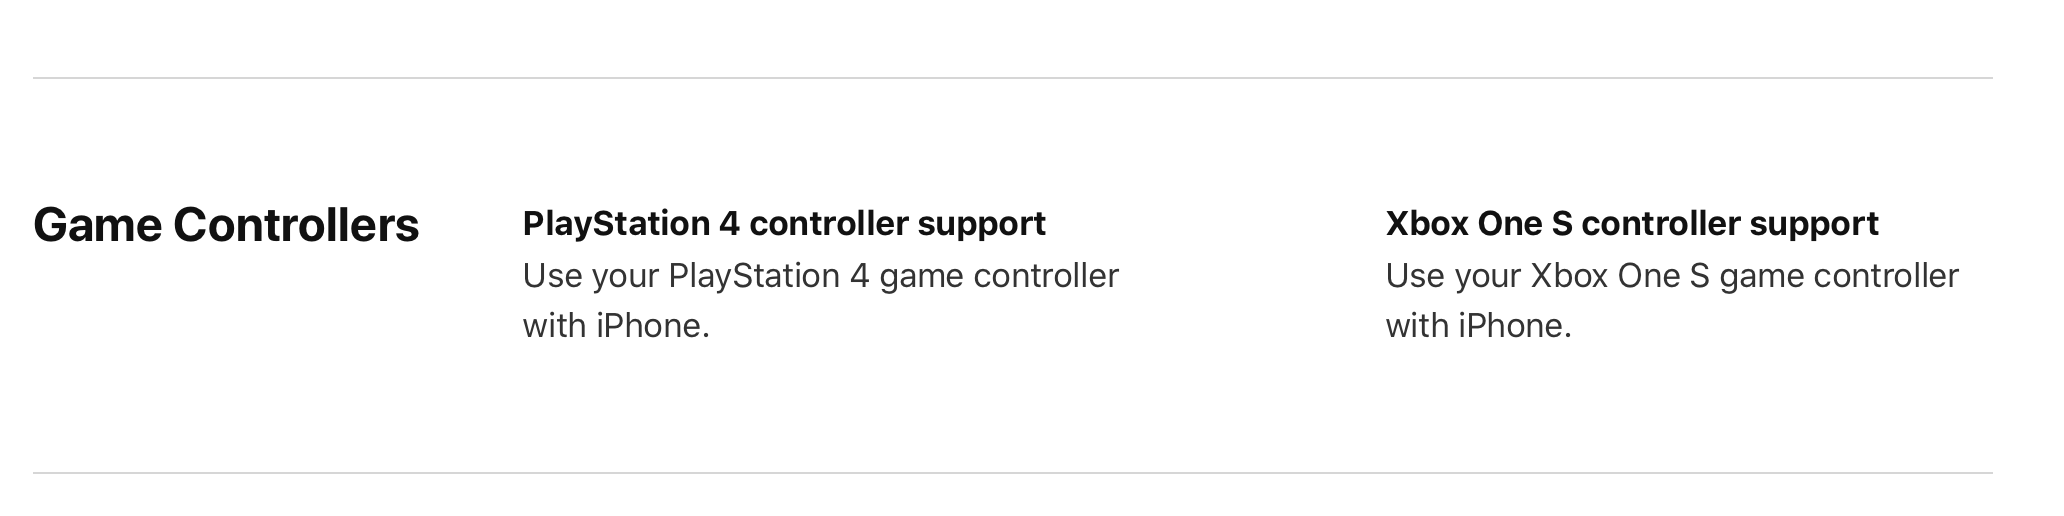 WWDC 2019: Xbox One and PlayStation 4 Controller Support Will Include  iPhone in Addition to Apple TV – TouchArcade